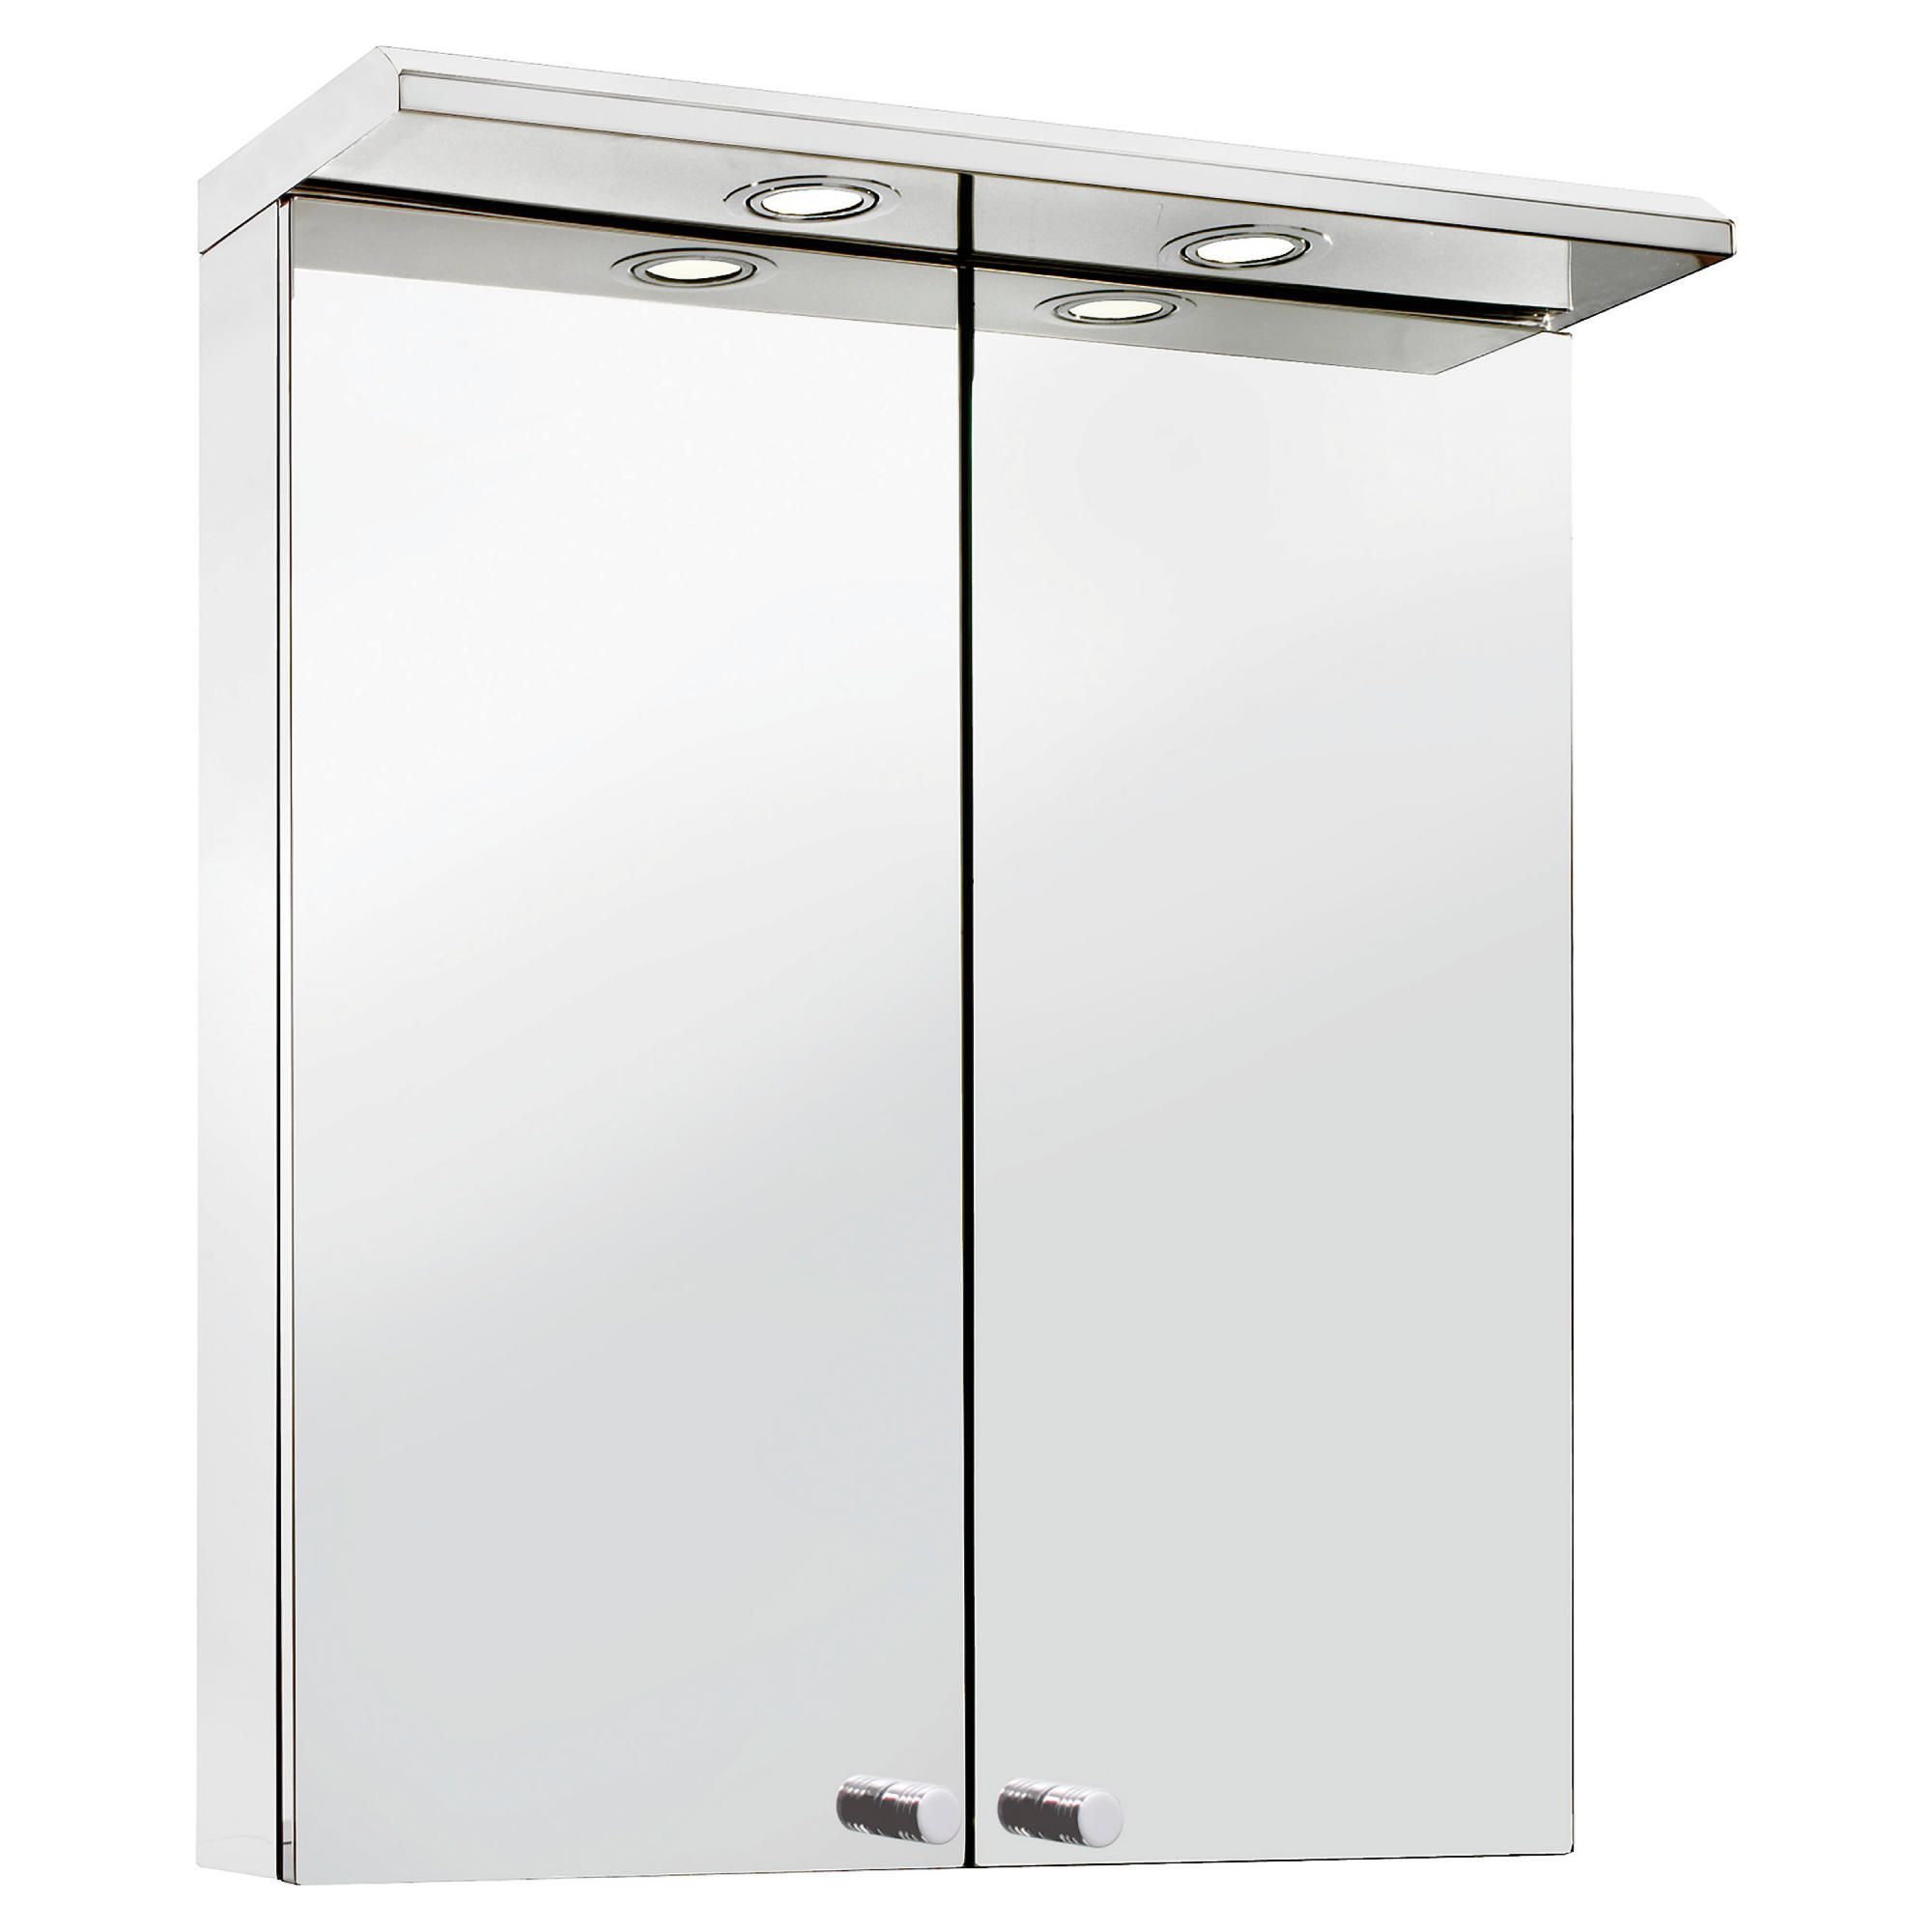 Croydex Stainless Steel Two Door Illuminated Cabinet at Tesco Direct